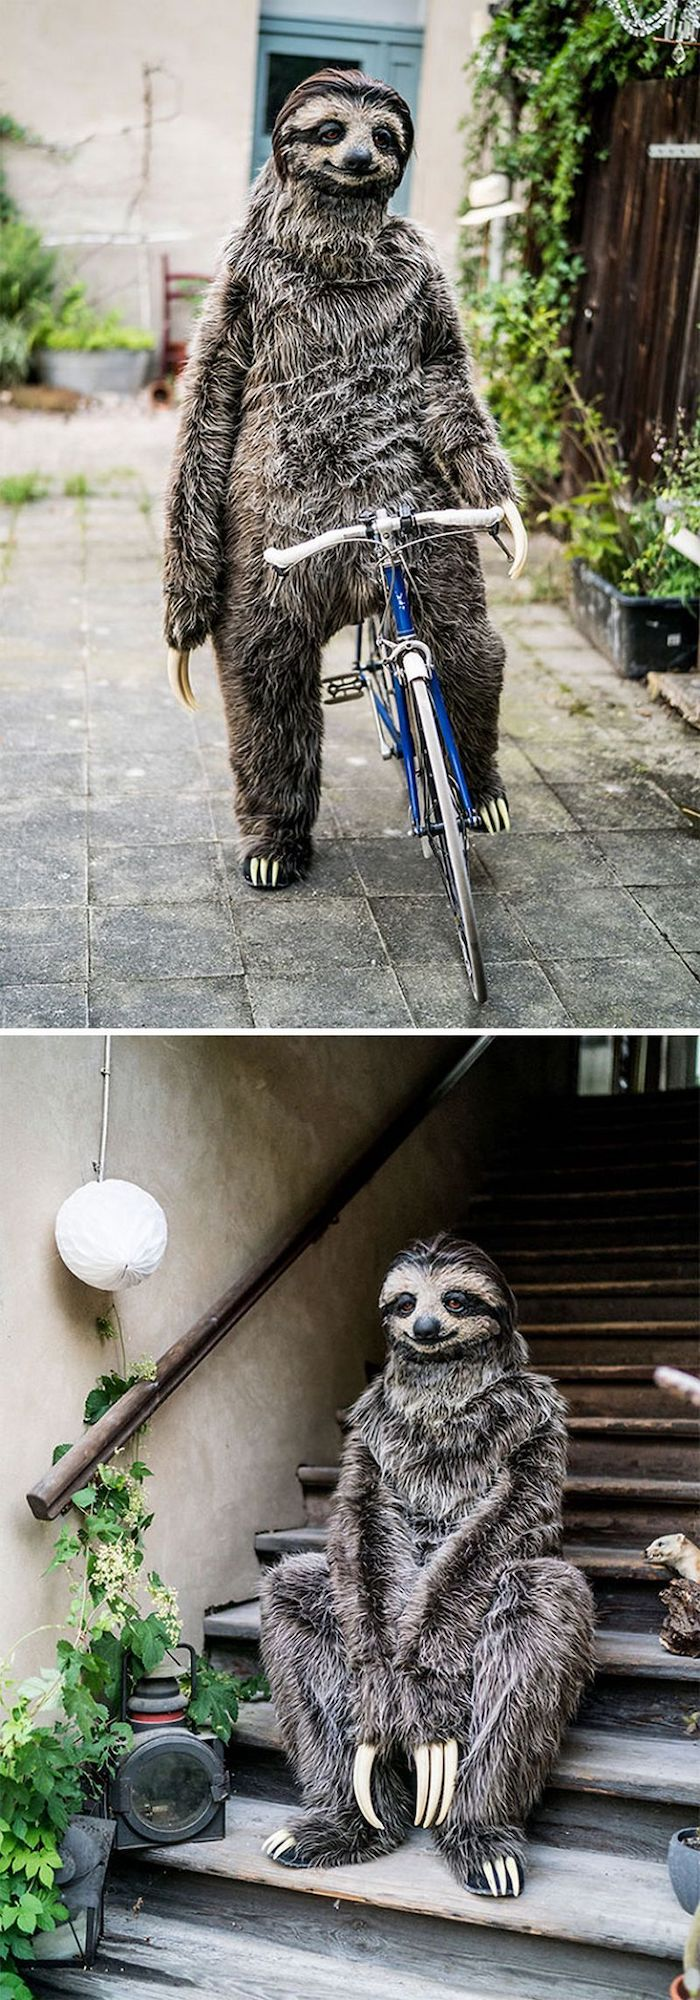 man in a sloth costume, riding a bike, sitting on stairs, what should i be for halloween, side by side photos